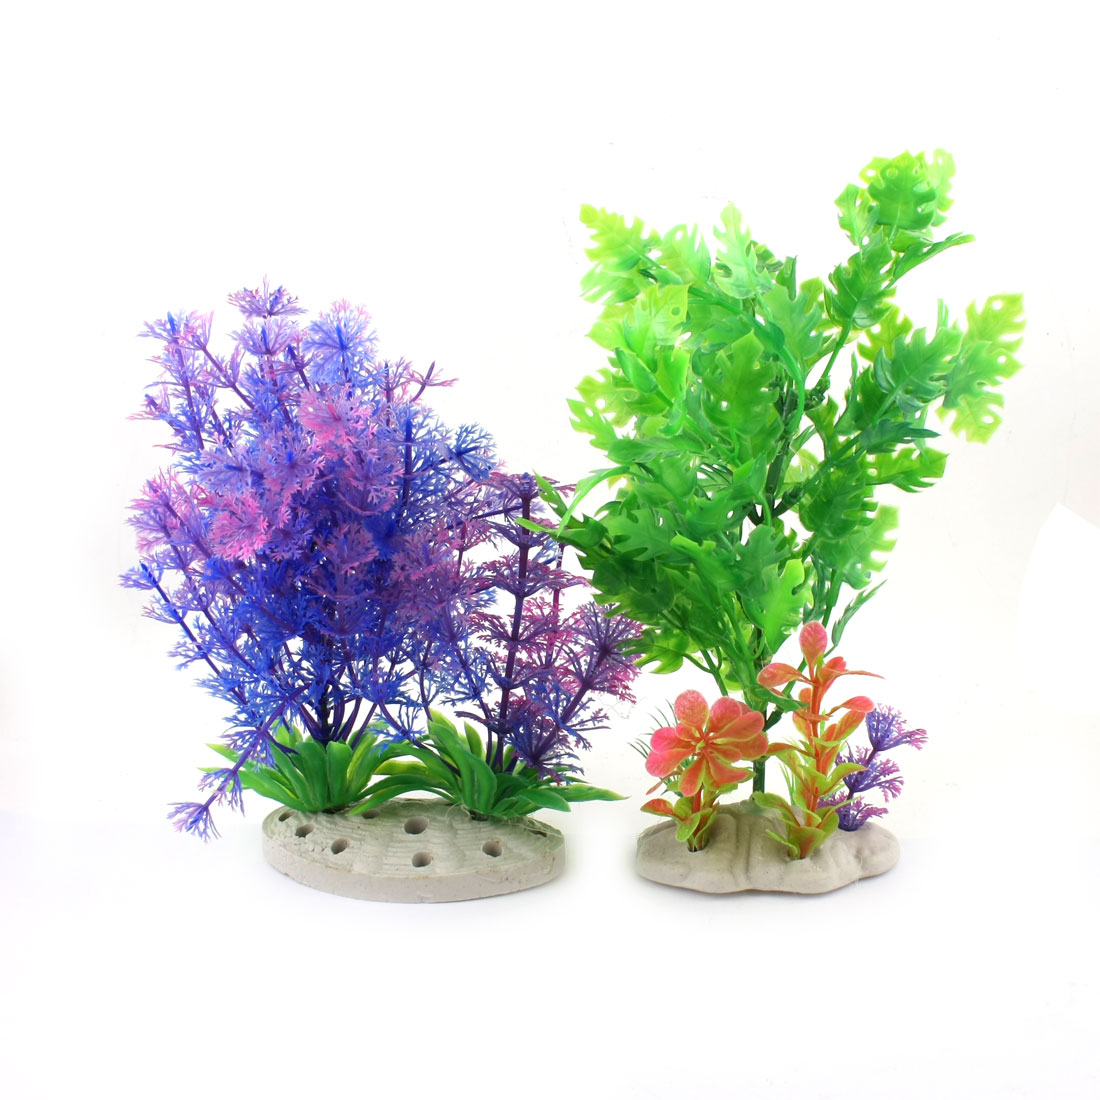 2 Pcs Aquarium Decor Ceramic Base Green Blue Plastic Simulation Water Grass